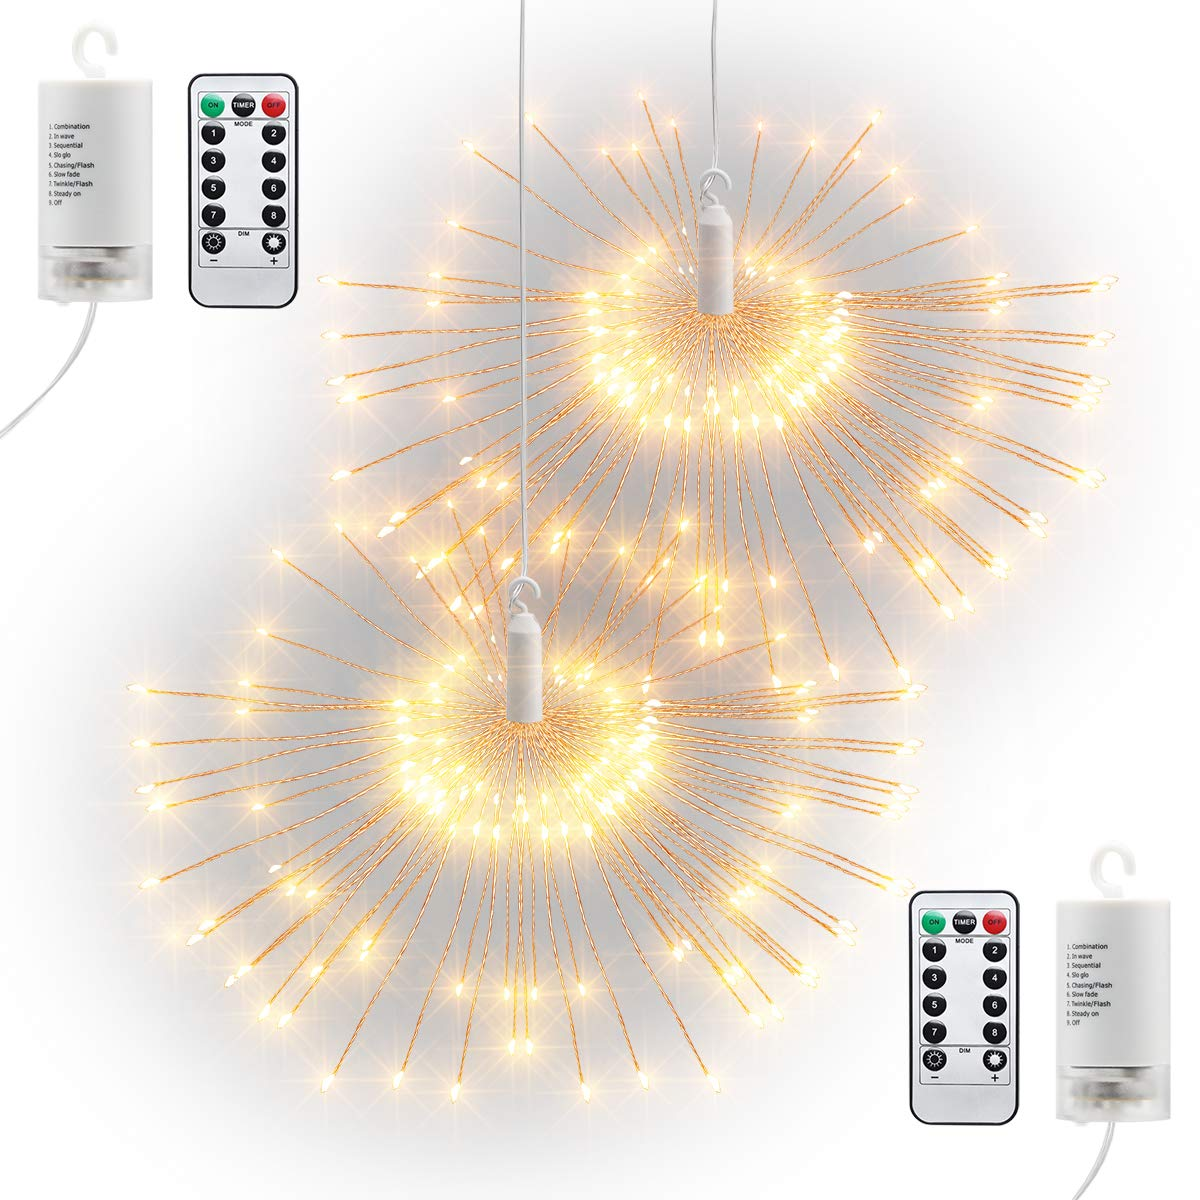 GDEALER 2 Pack 120 Led Dimmable Starry String Lights, 6ft Waterproof Fairy Lights Battery Operated with Remote Timer,8 Modes Twinkle Lights Christmas Lights Indoor Outdoor Tree Decor Warm White